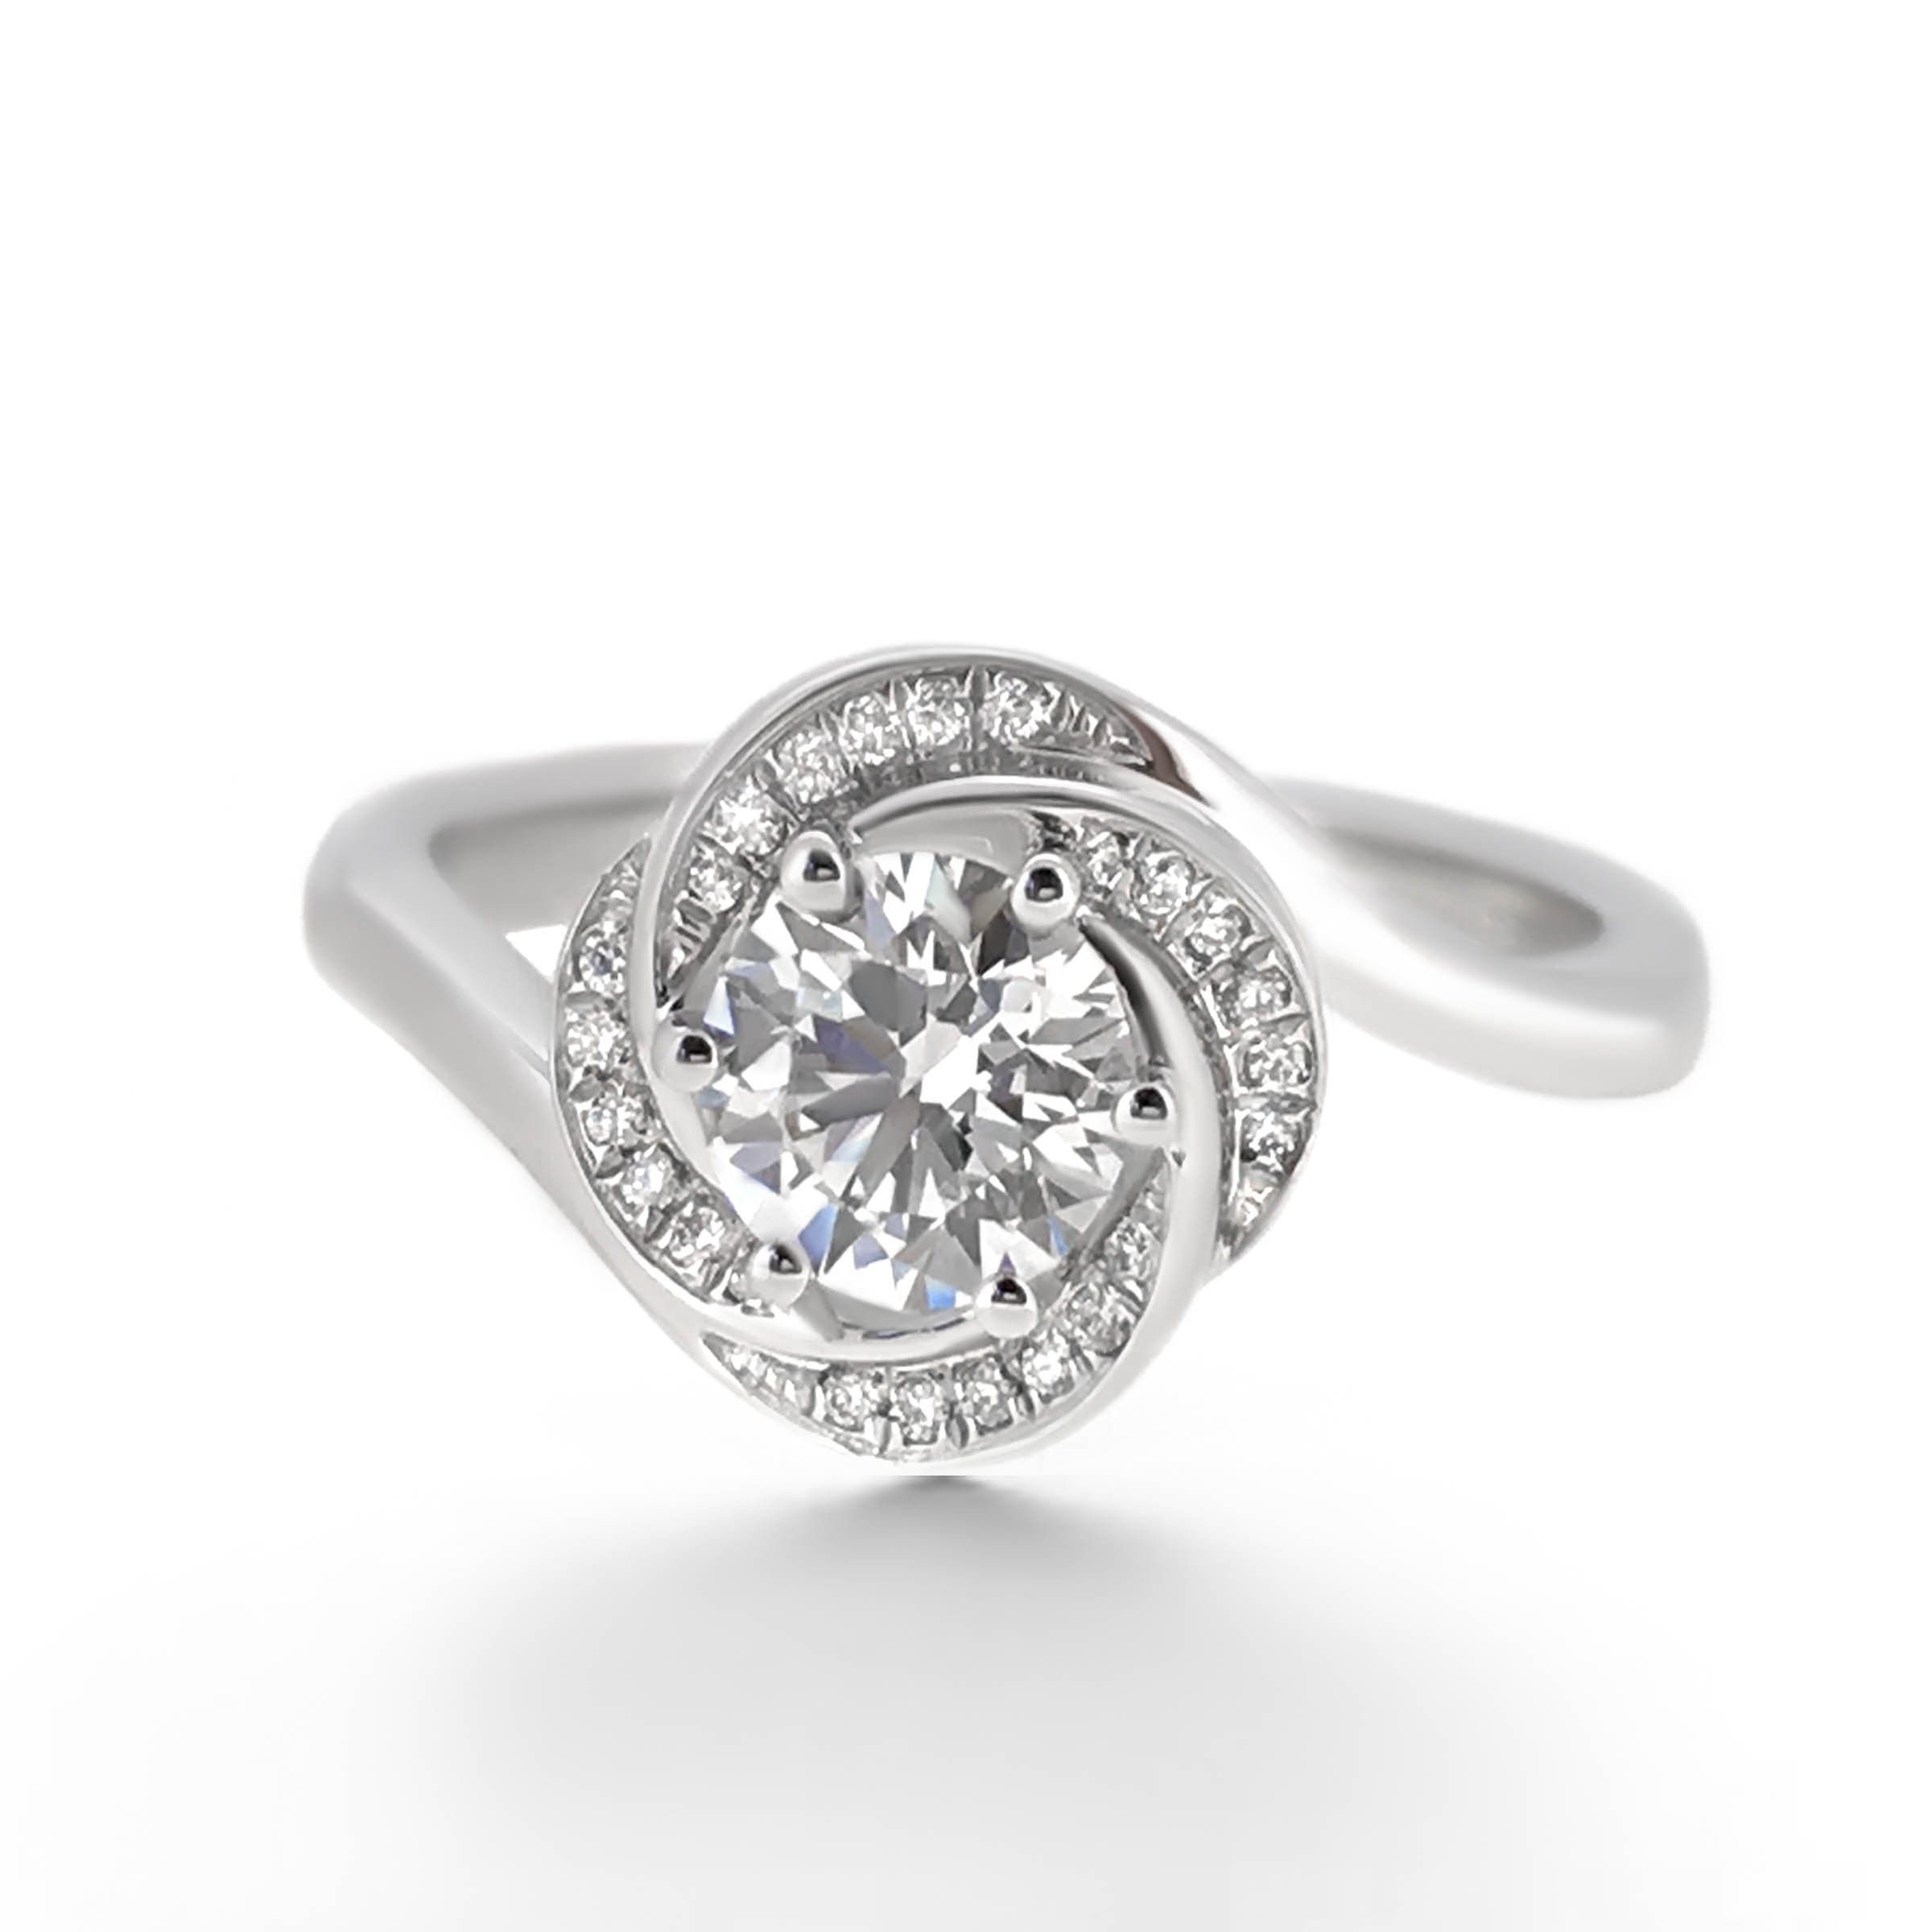 flower twist engagement ring- haywards of hong kong